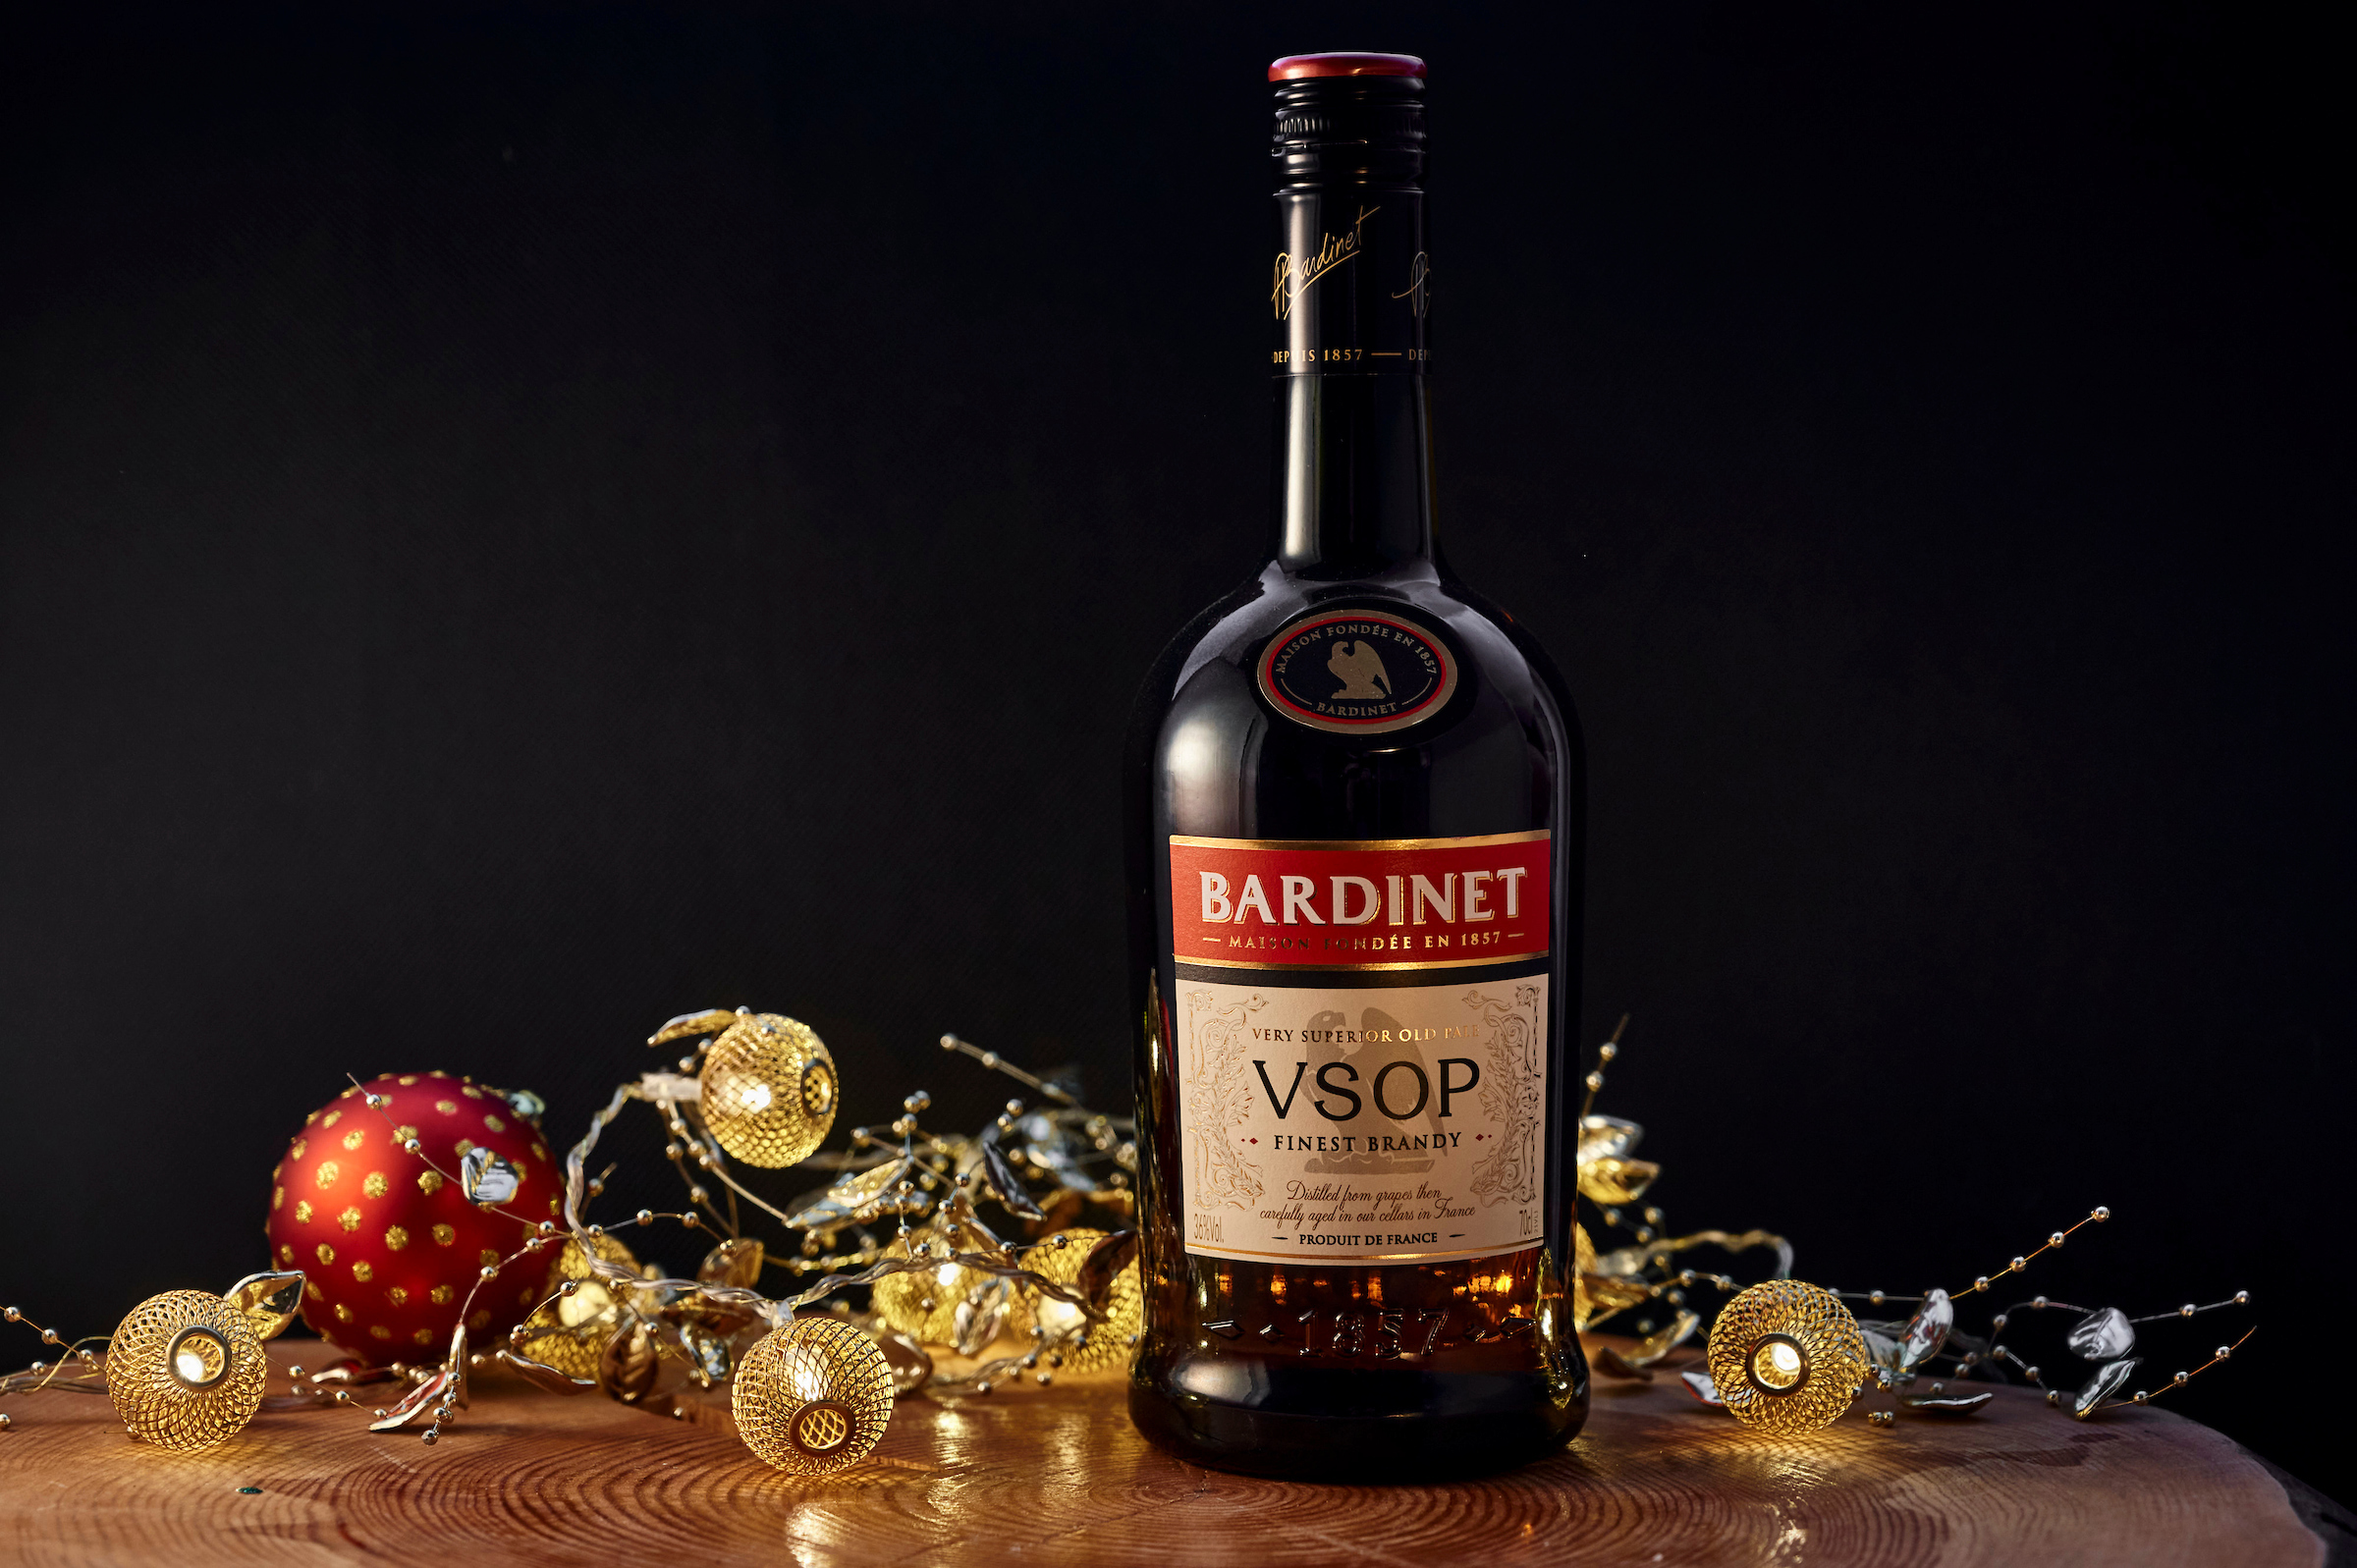 bardinet christmas bottle - Food and Drink Scotland